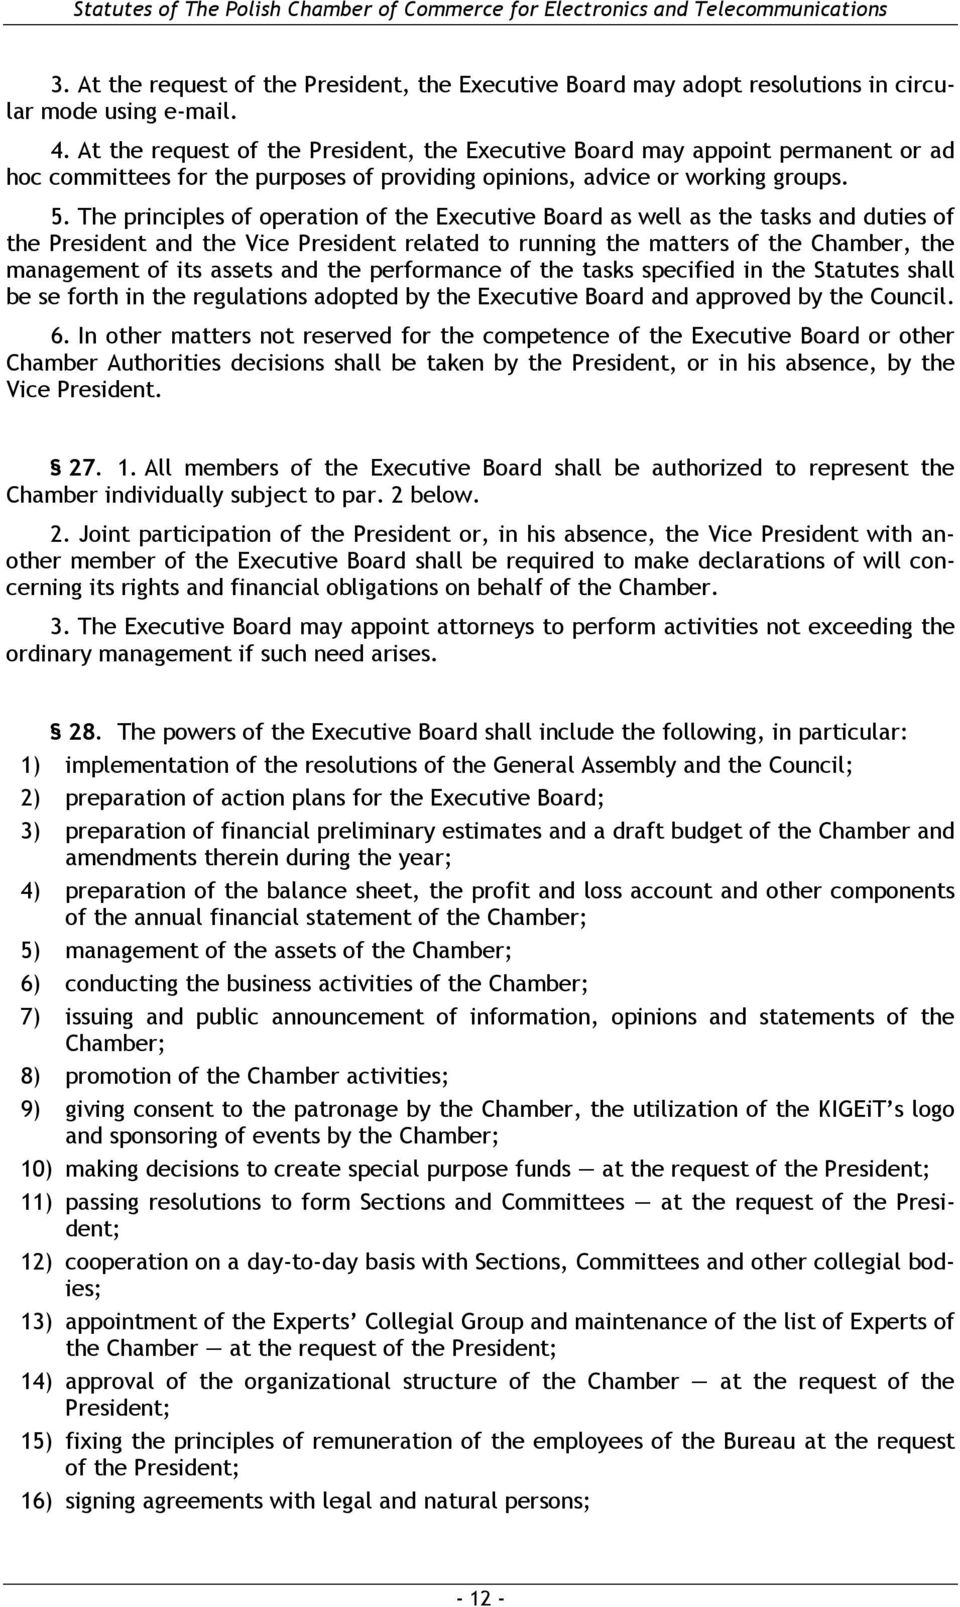 The principles of operation of the Executive Board as well as the tasks and duties of the President and the Vice President related to running the matters of the Chamber, the management of its assets